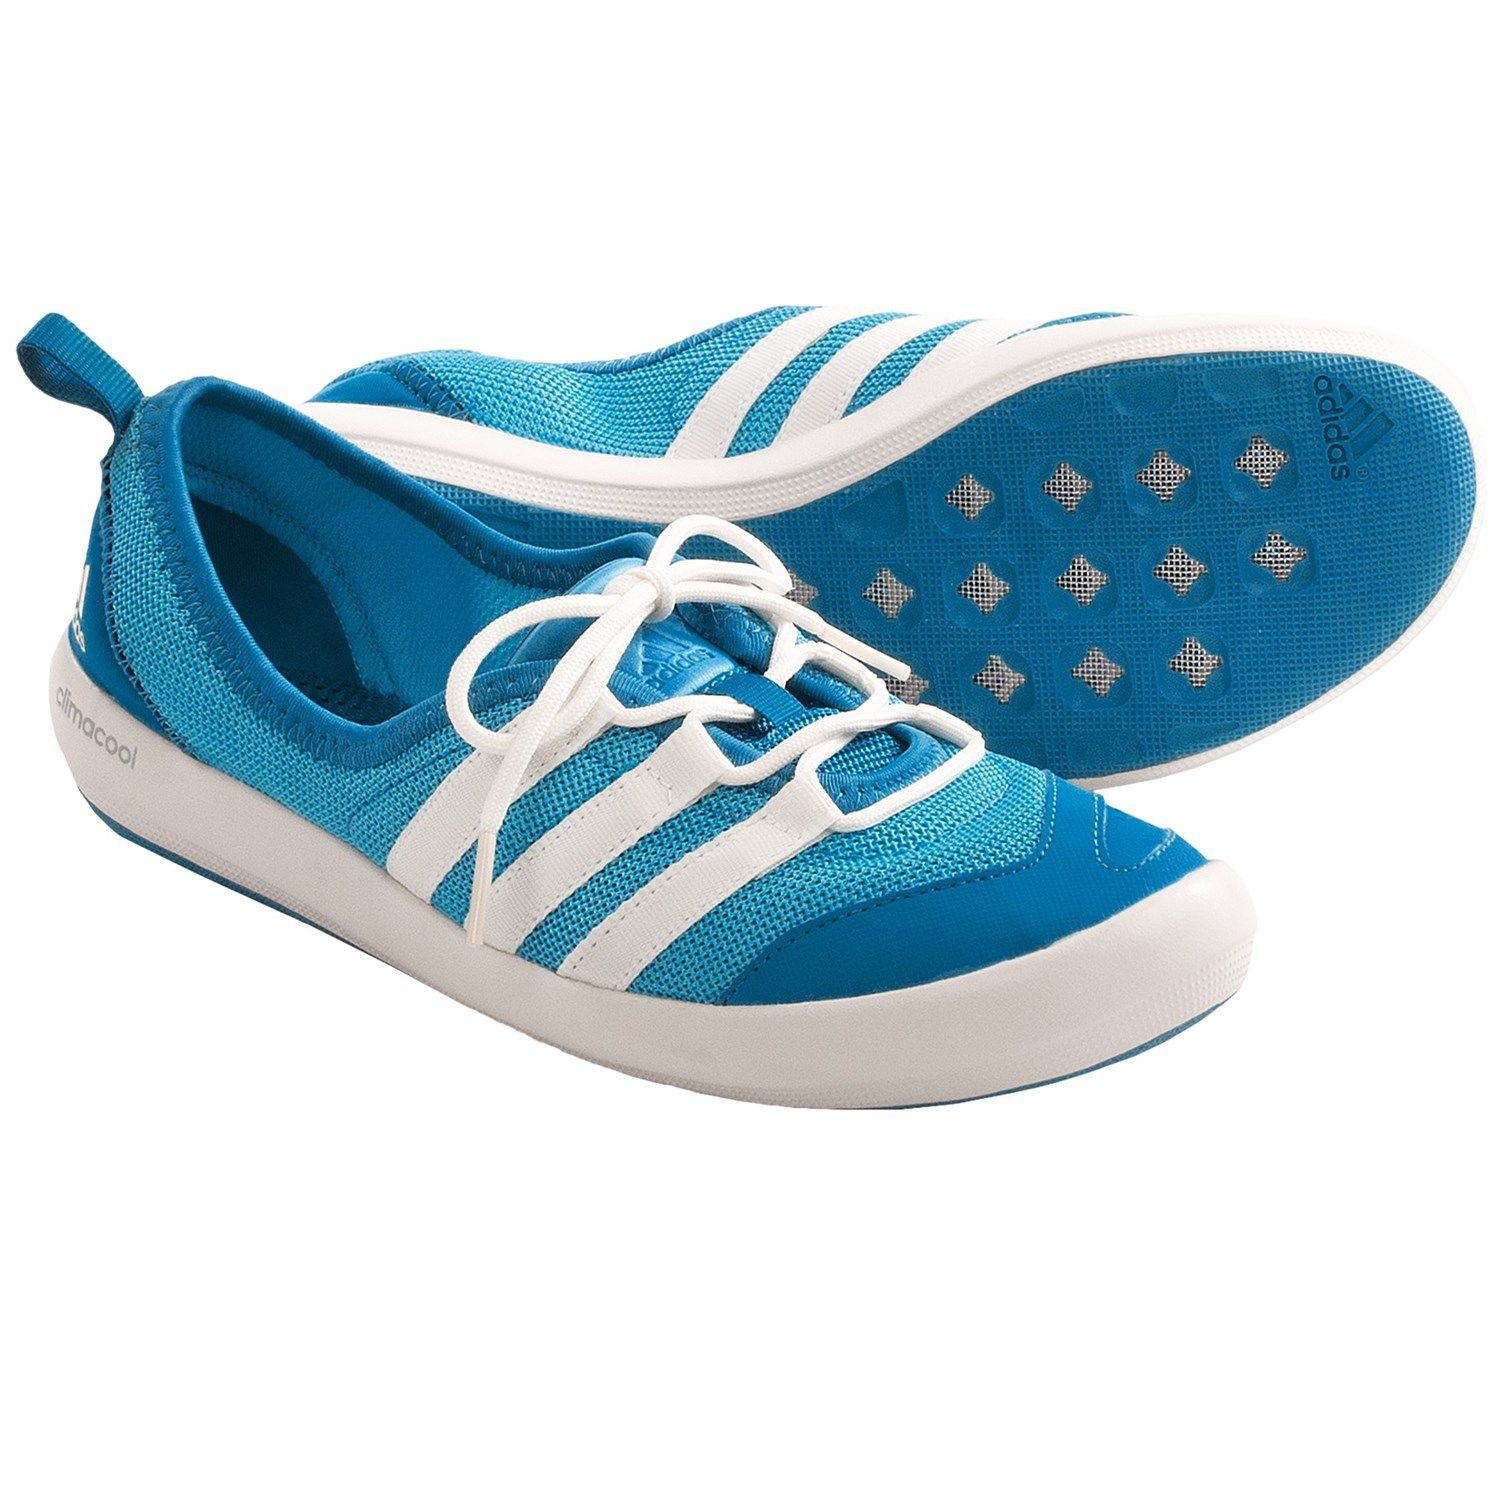 samba adidas shoes for women